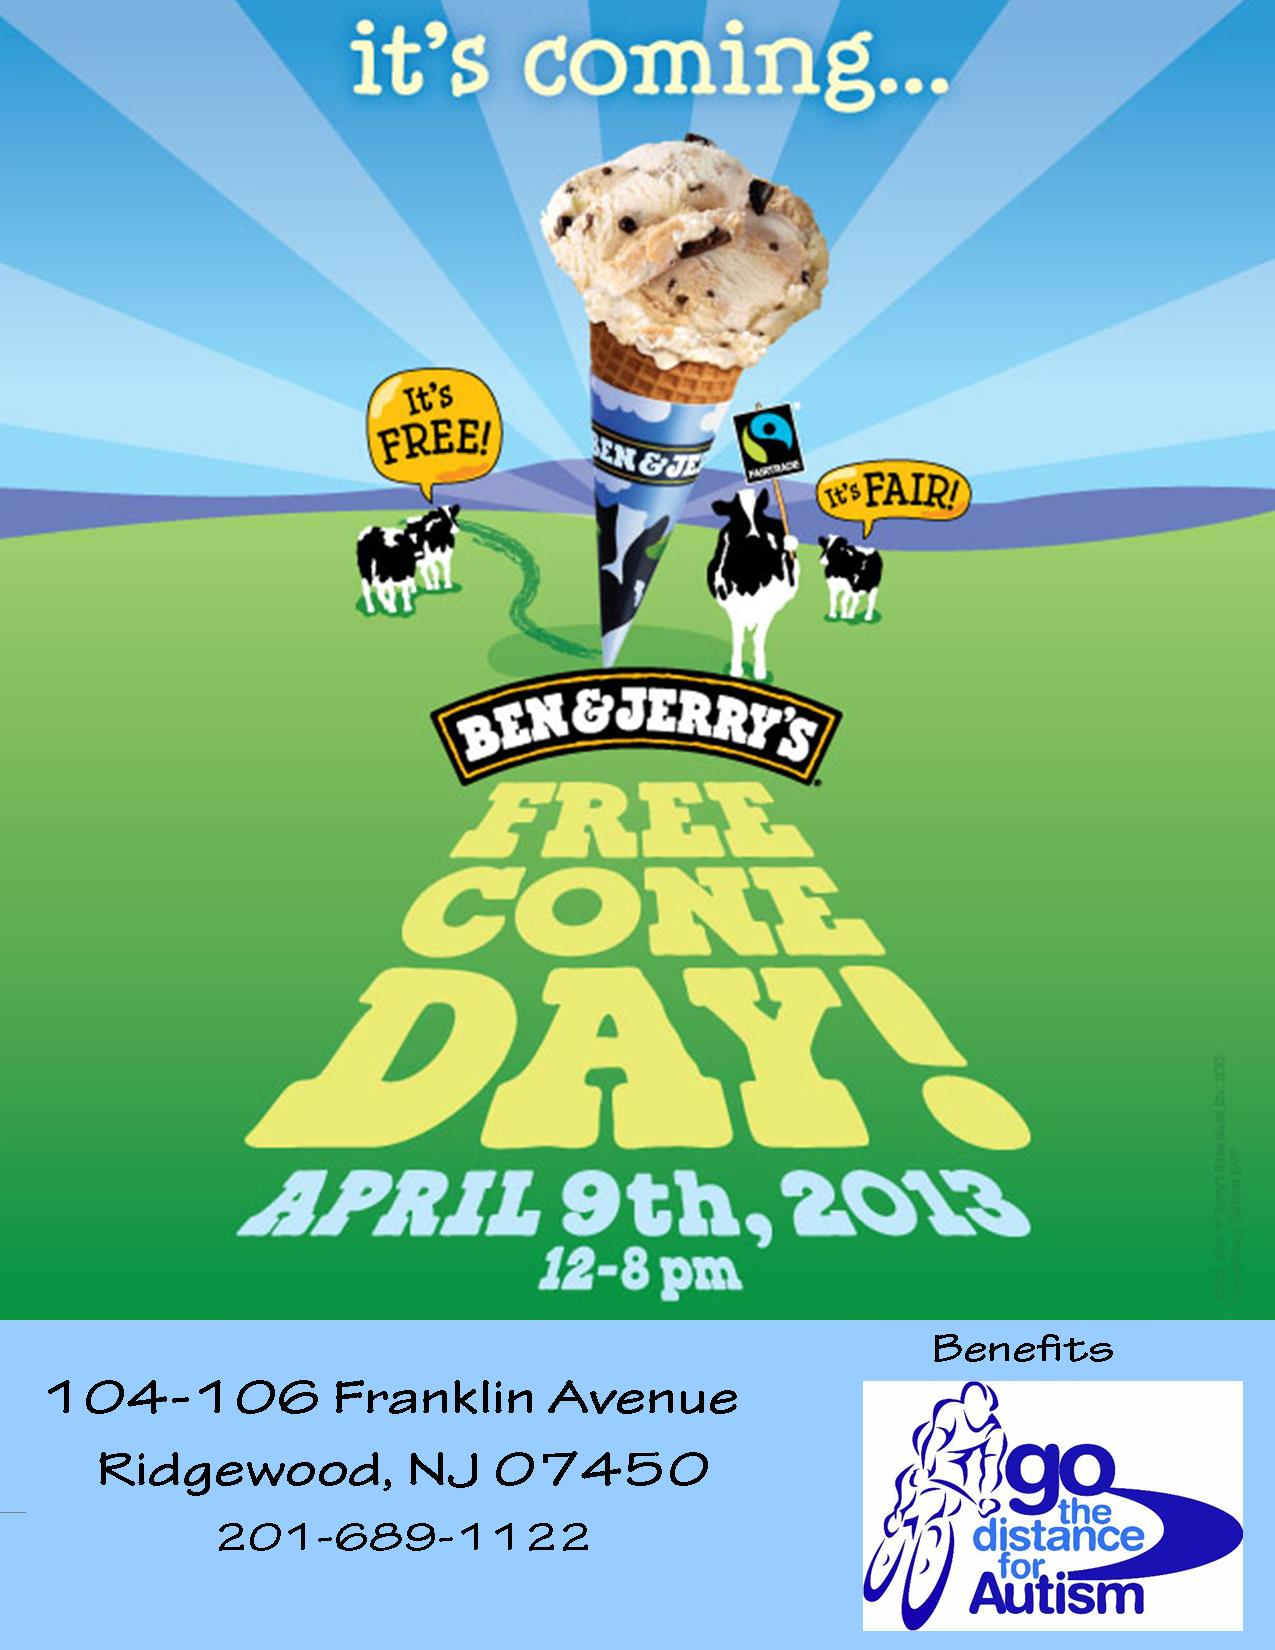 Free Cone Day & Go the Distance for Autism